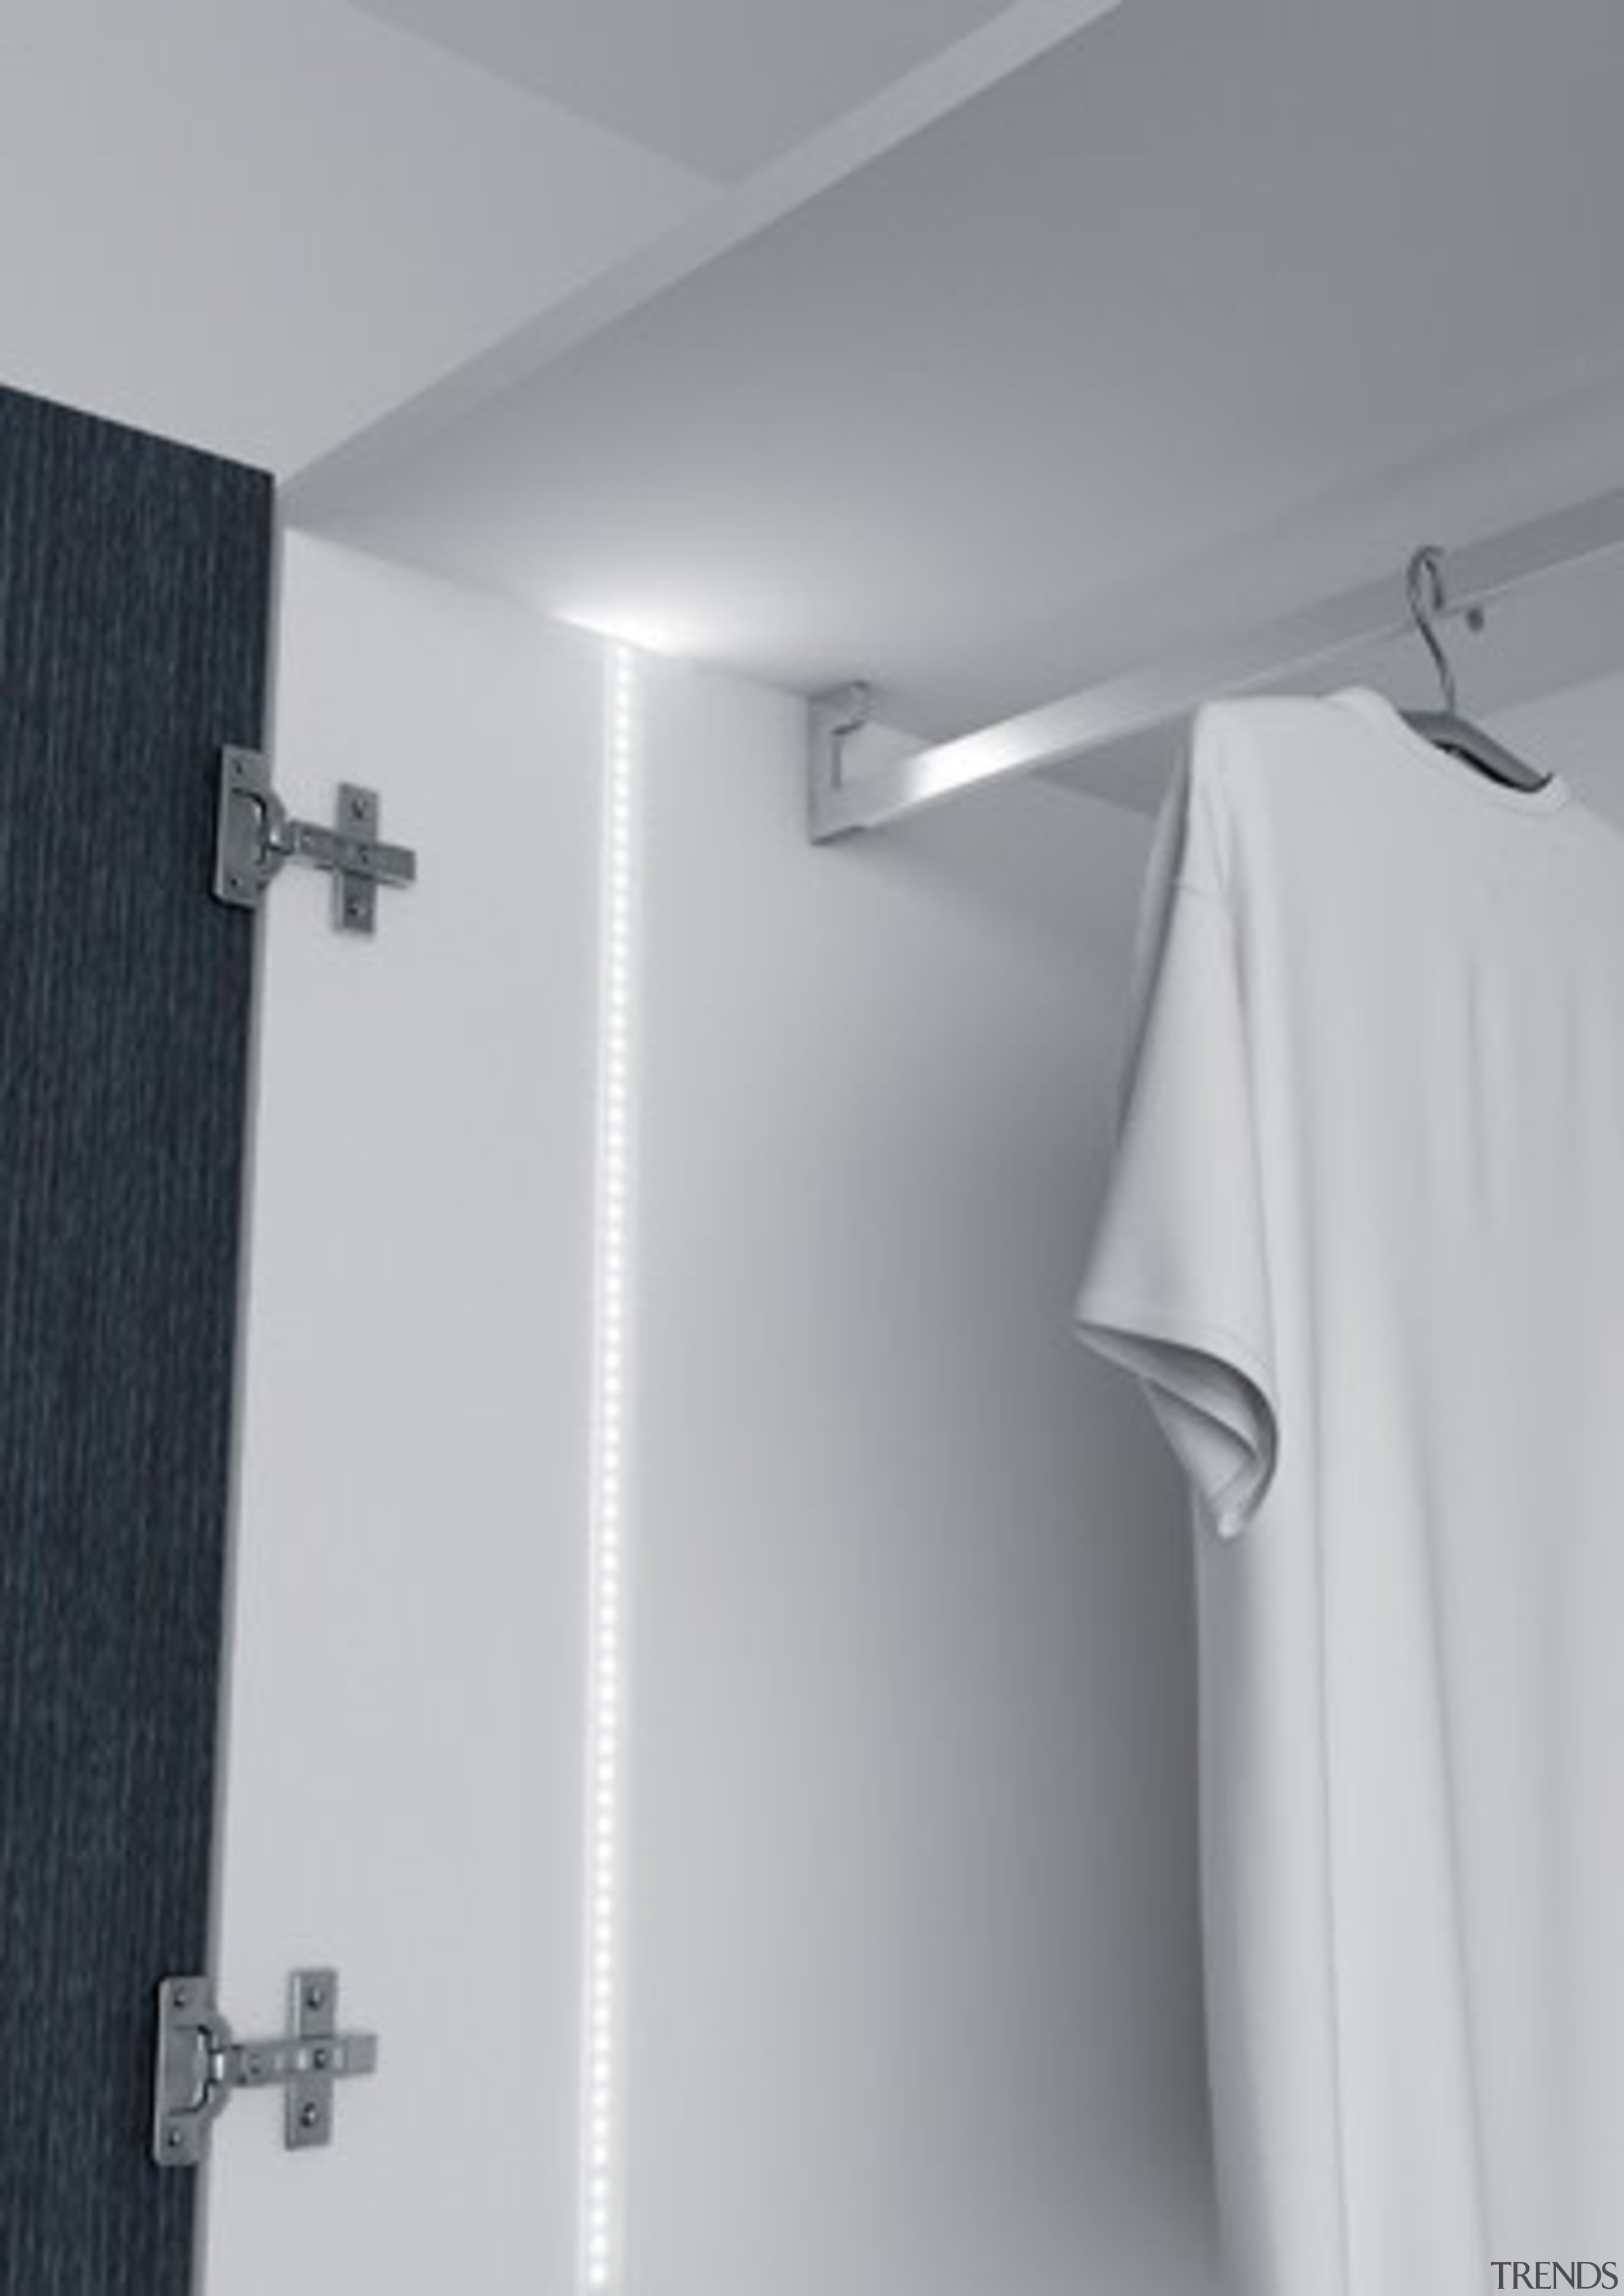 Domus Line String LED Profile Designed in Italy to angle, bathroom, light, plumbing fixture, product design, shower, tap, wall, gray